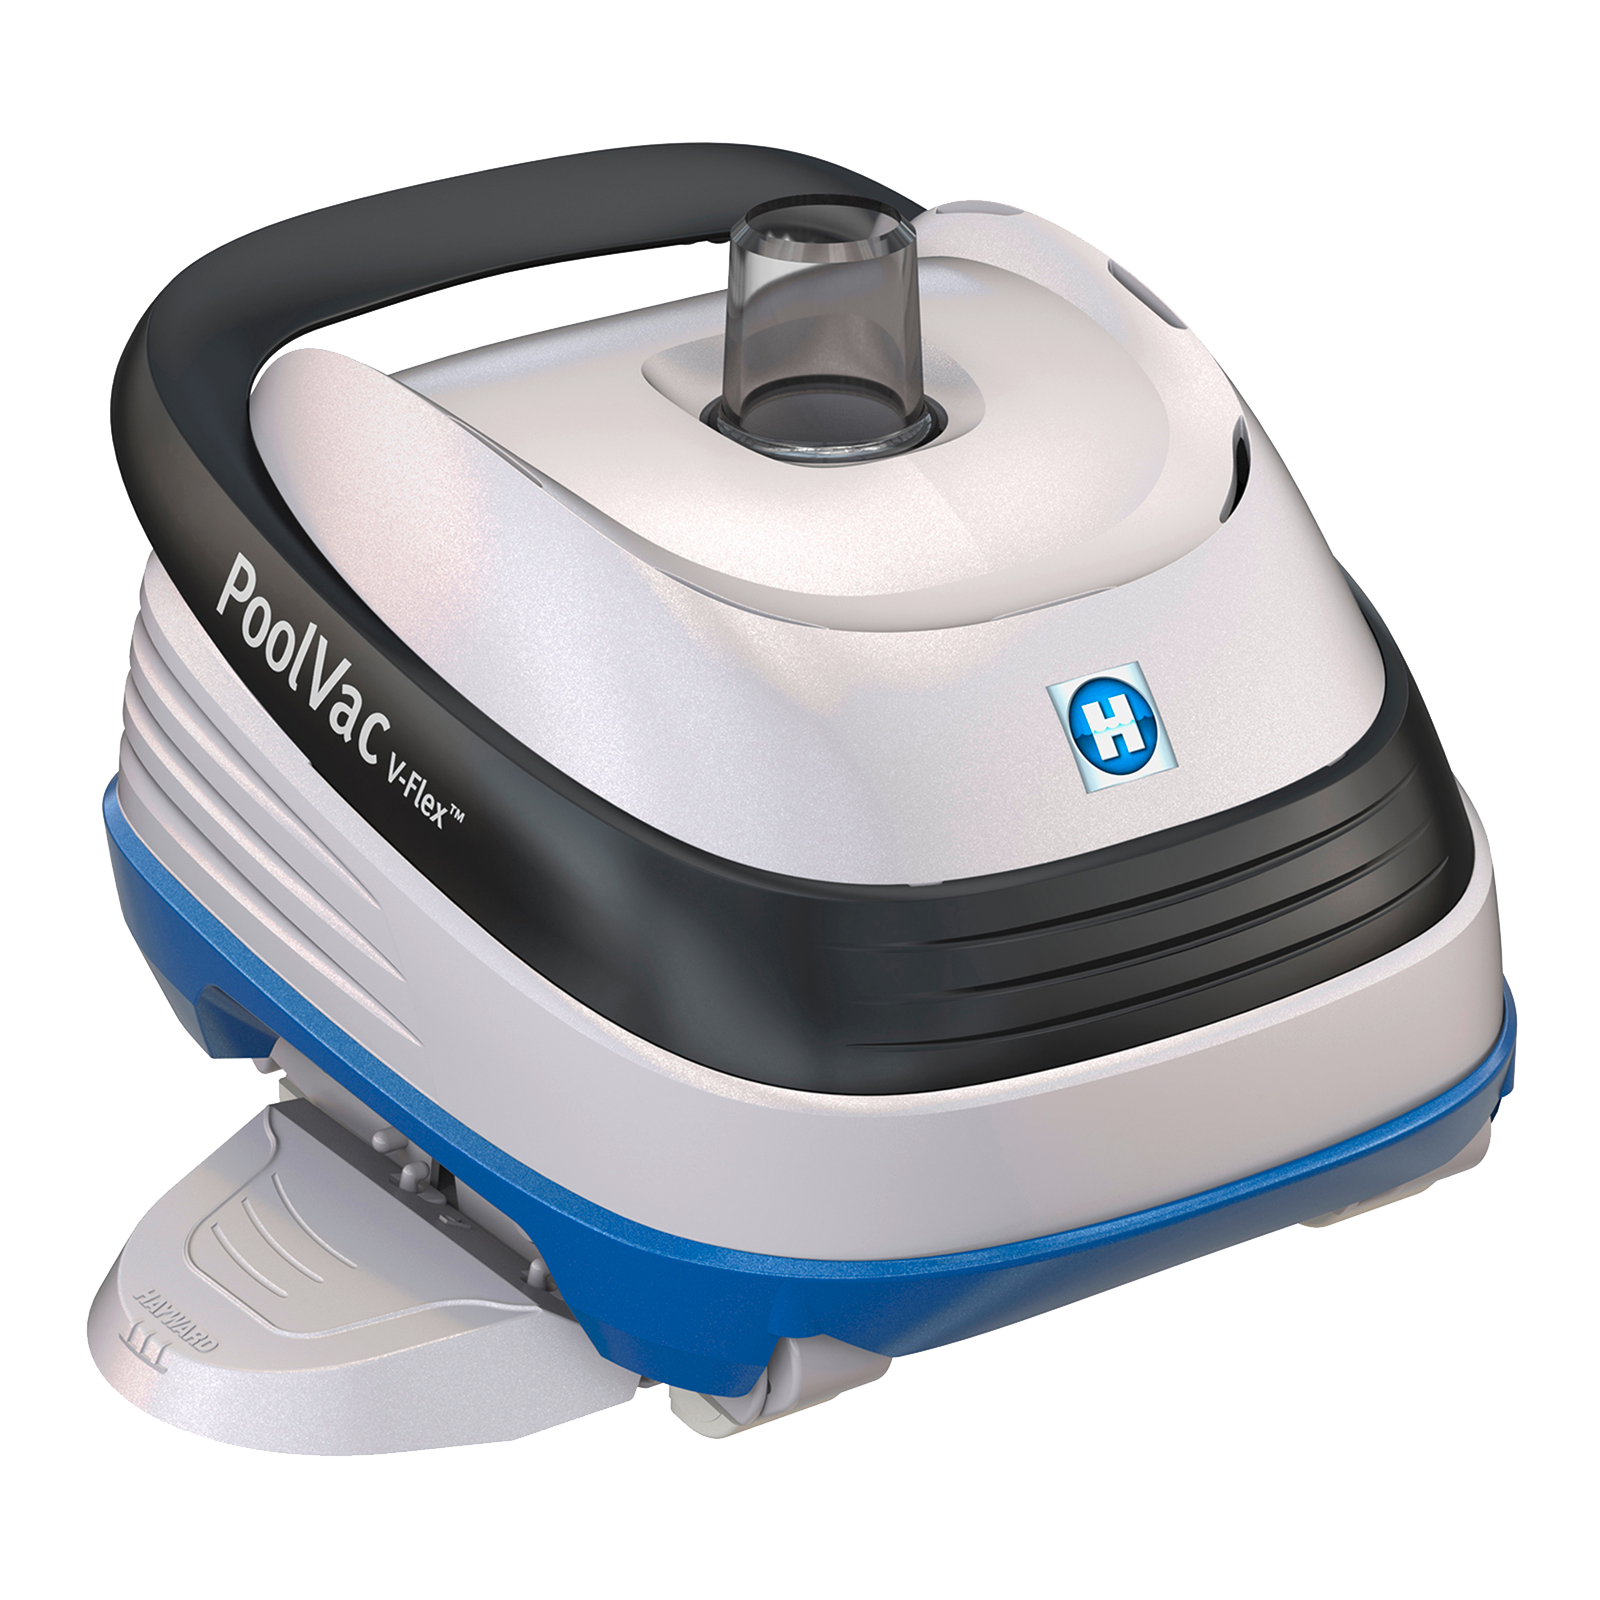 PoolVac V-FLEX™ Robot